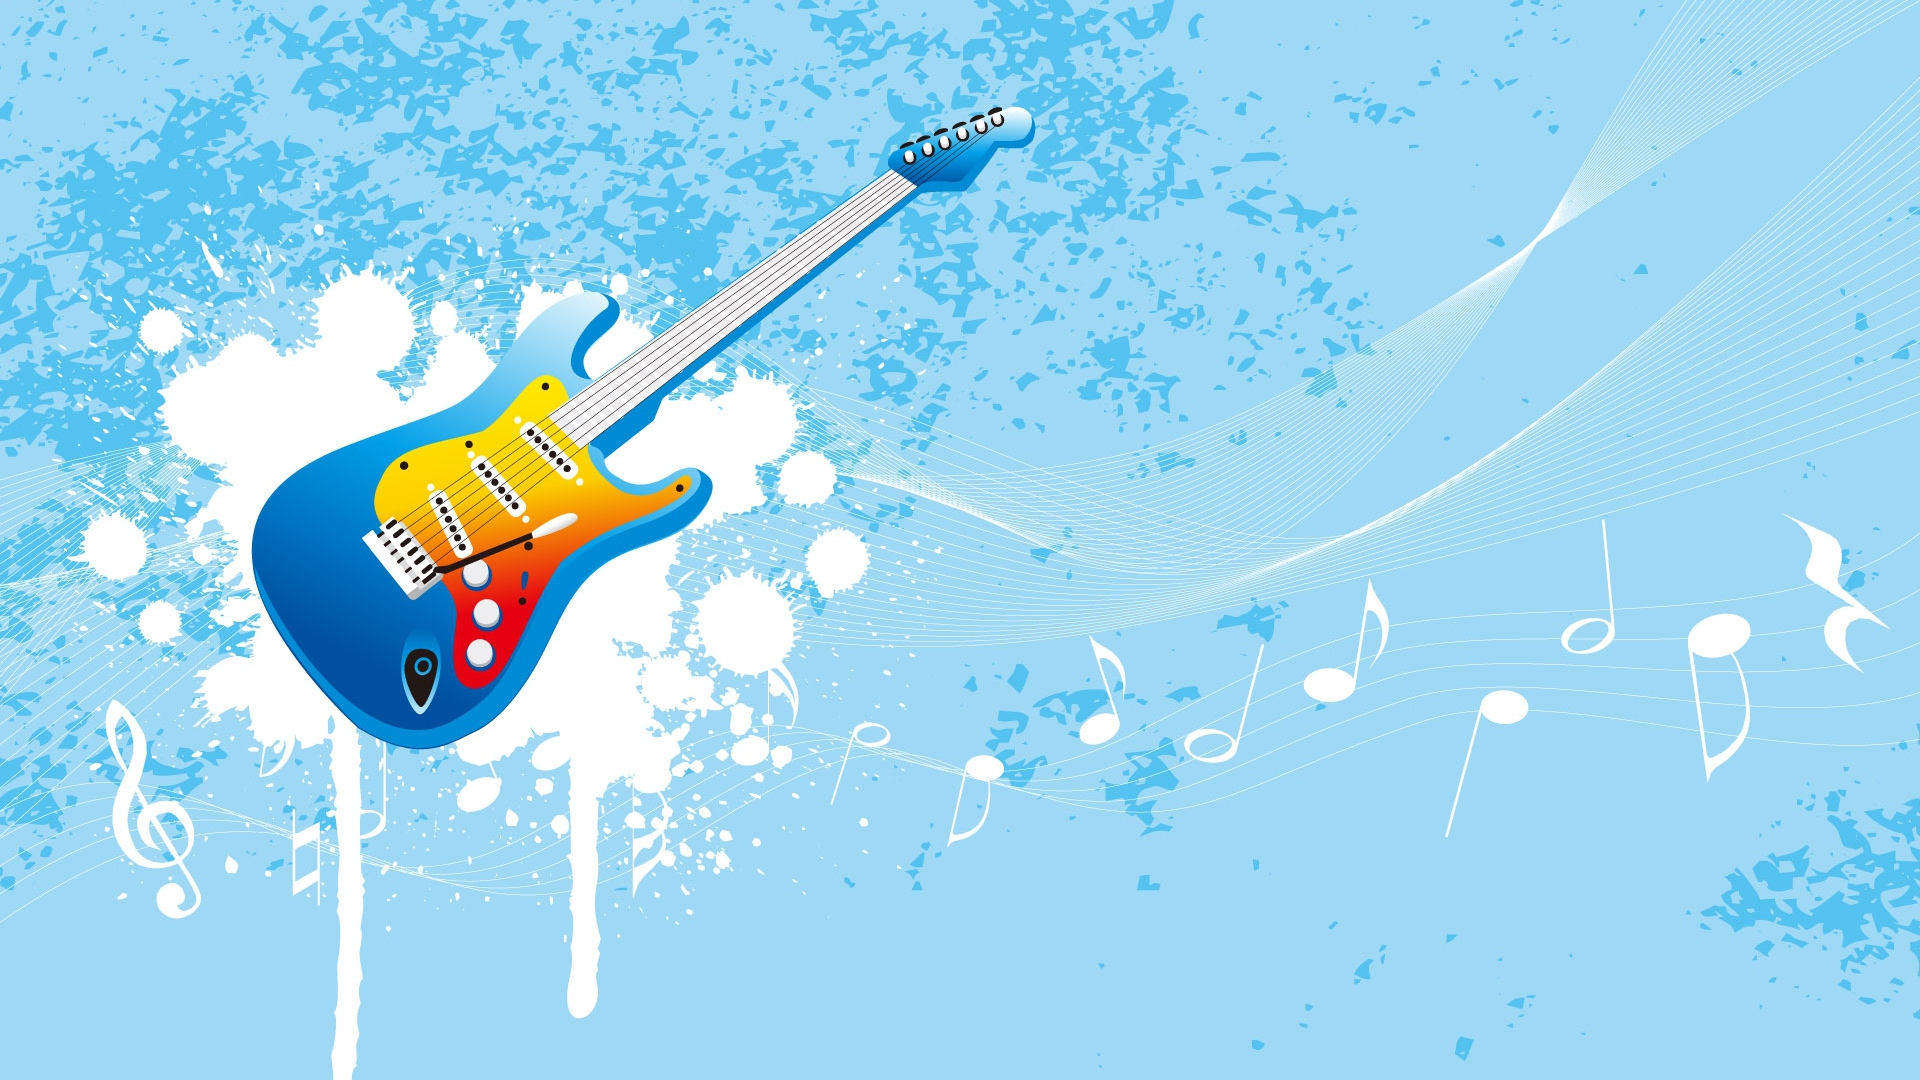 Download Wallpaper 1920x1080 Guitar Music Flying Sky Patterns Full Hd 1080p Hd Background